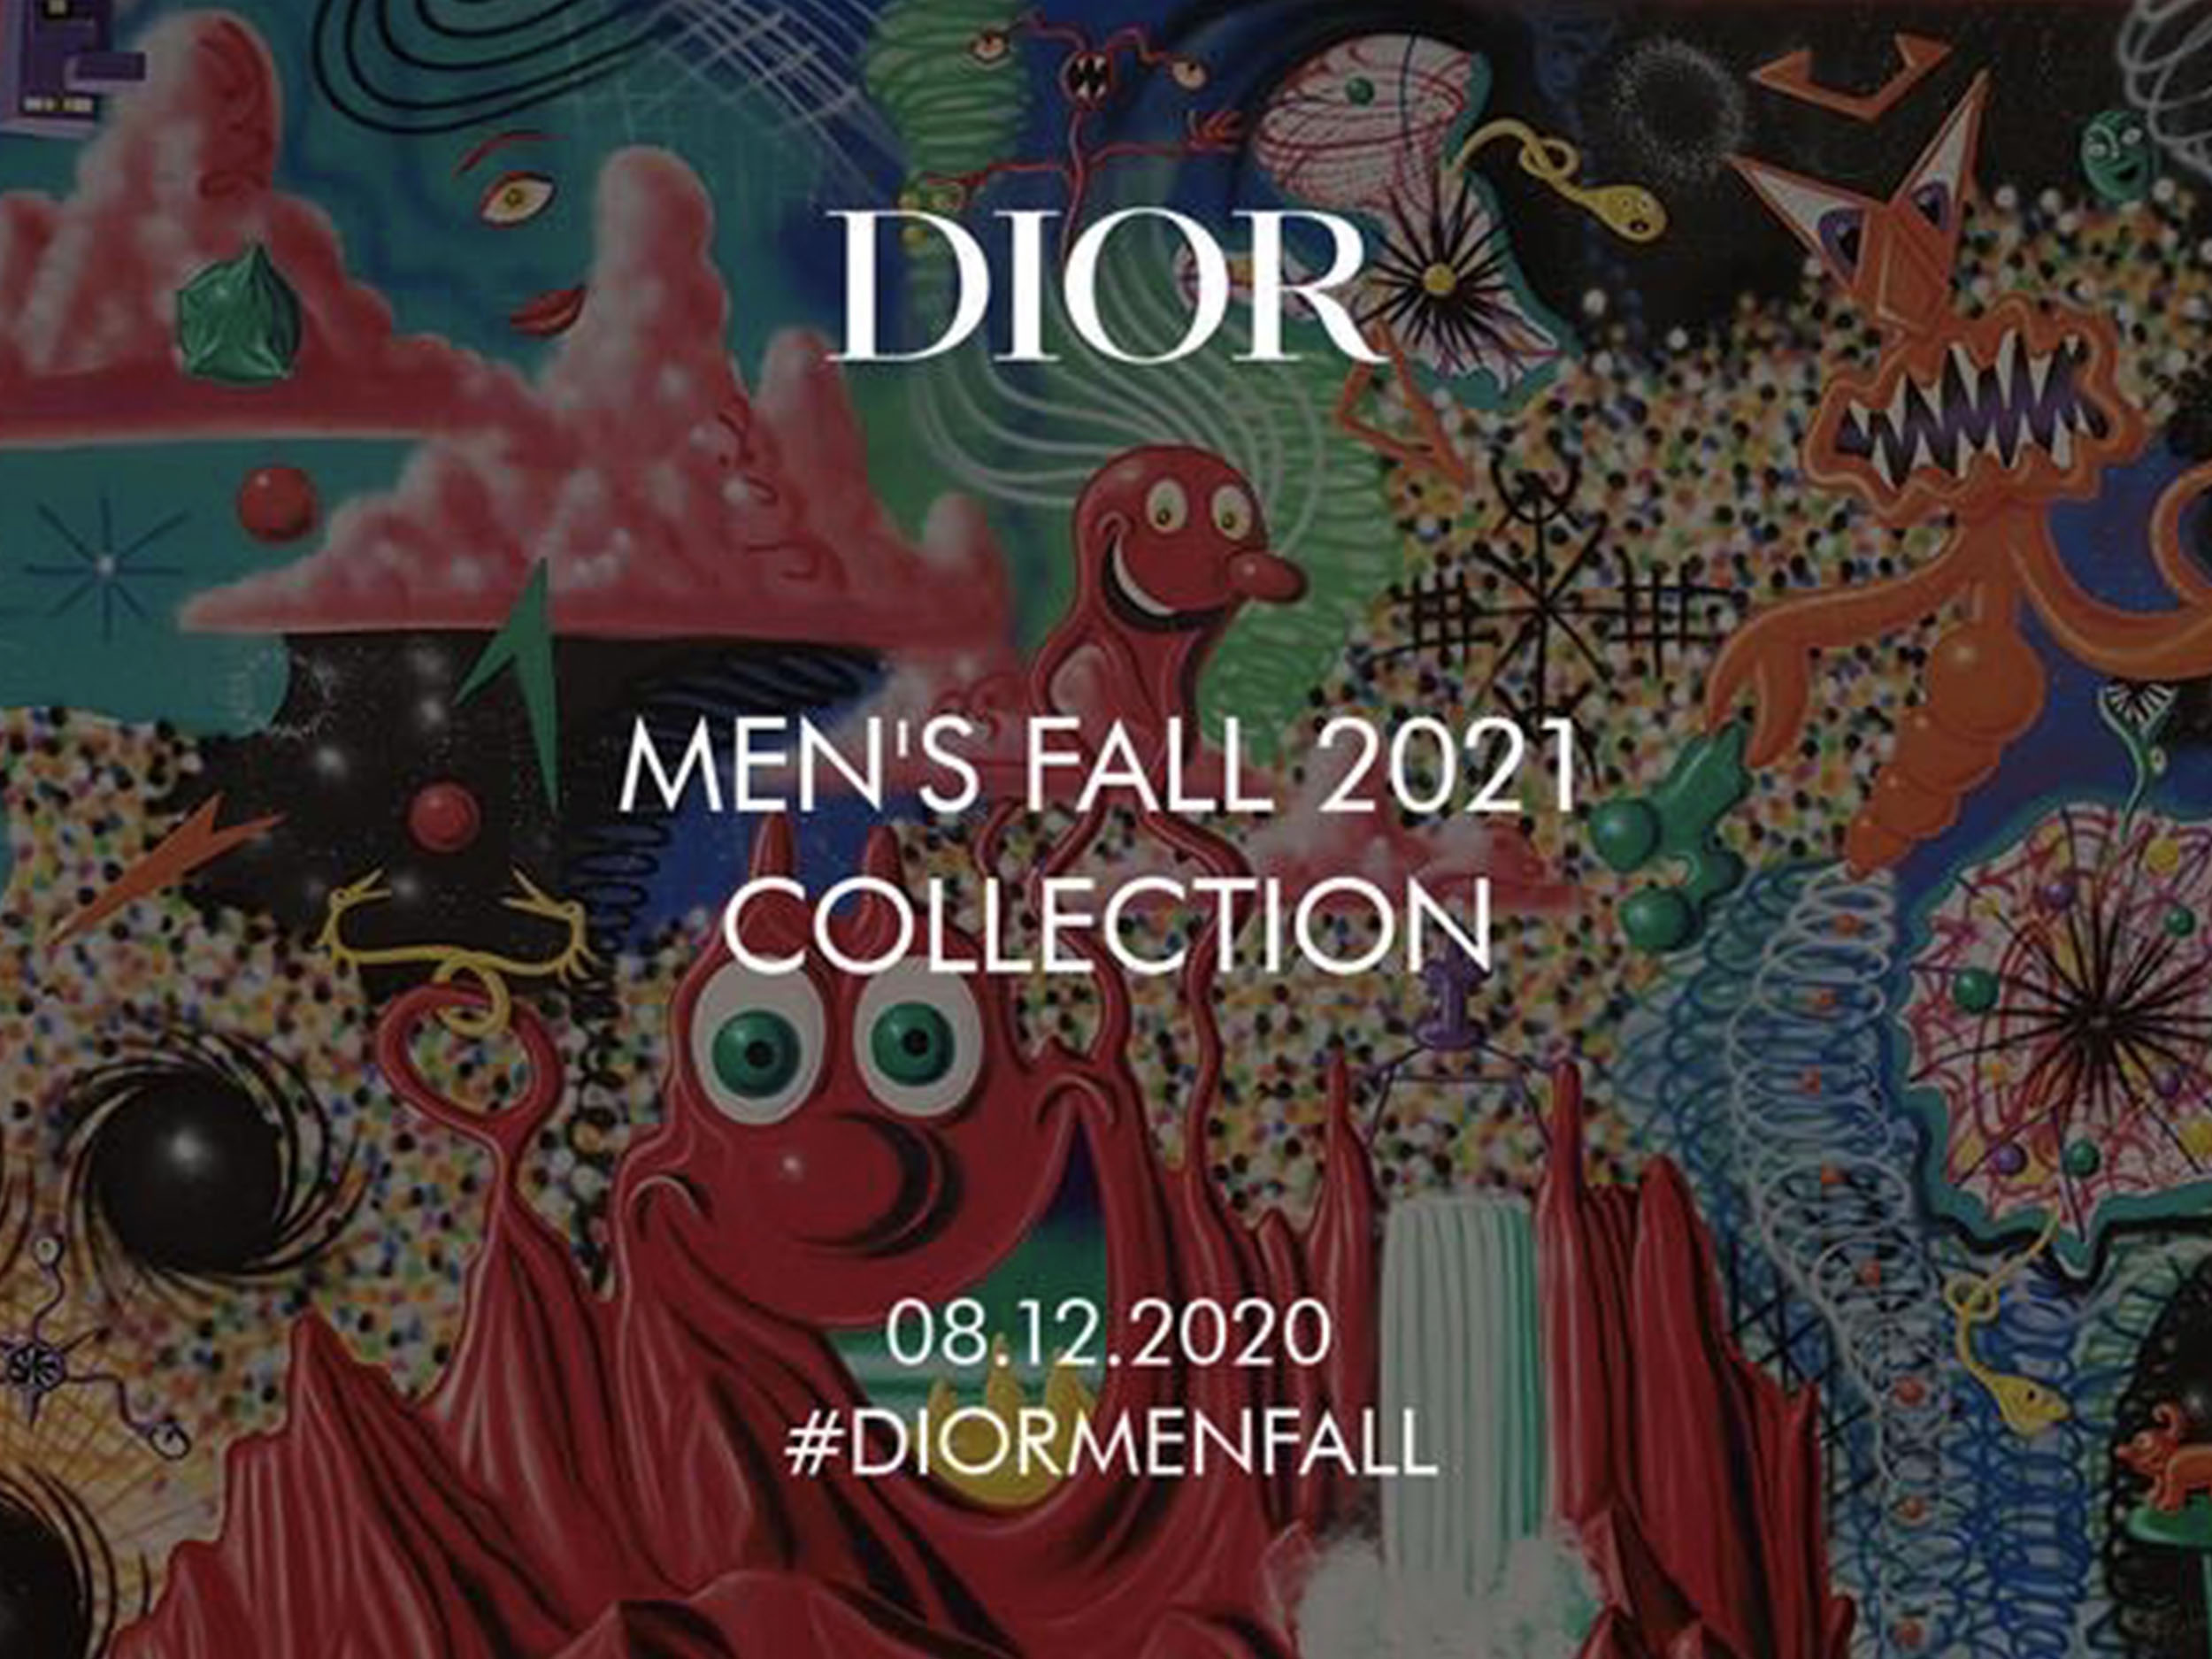 Livestream Dior's Fall/Winter 2021 men's collection here